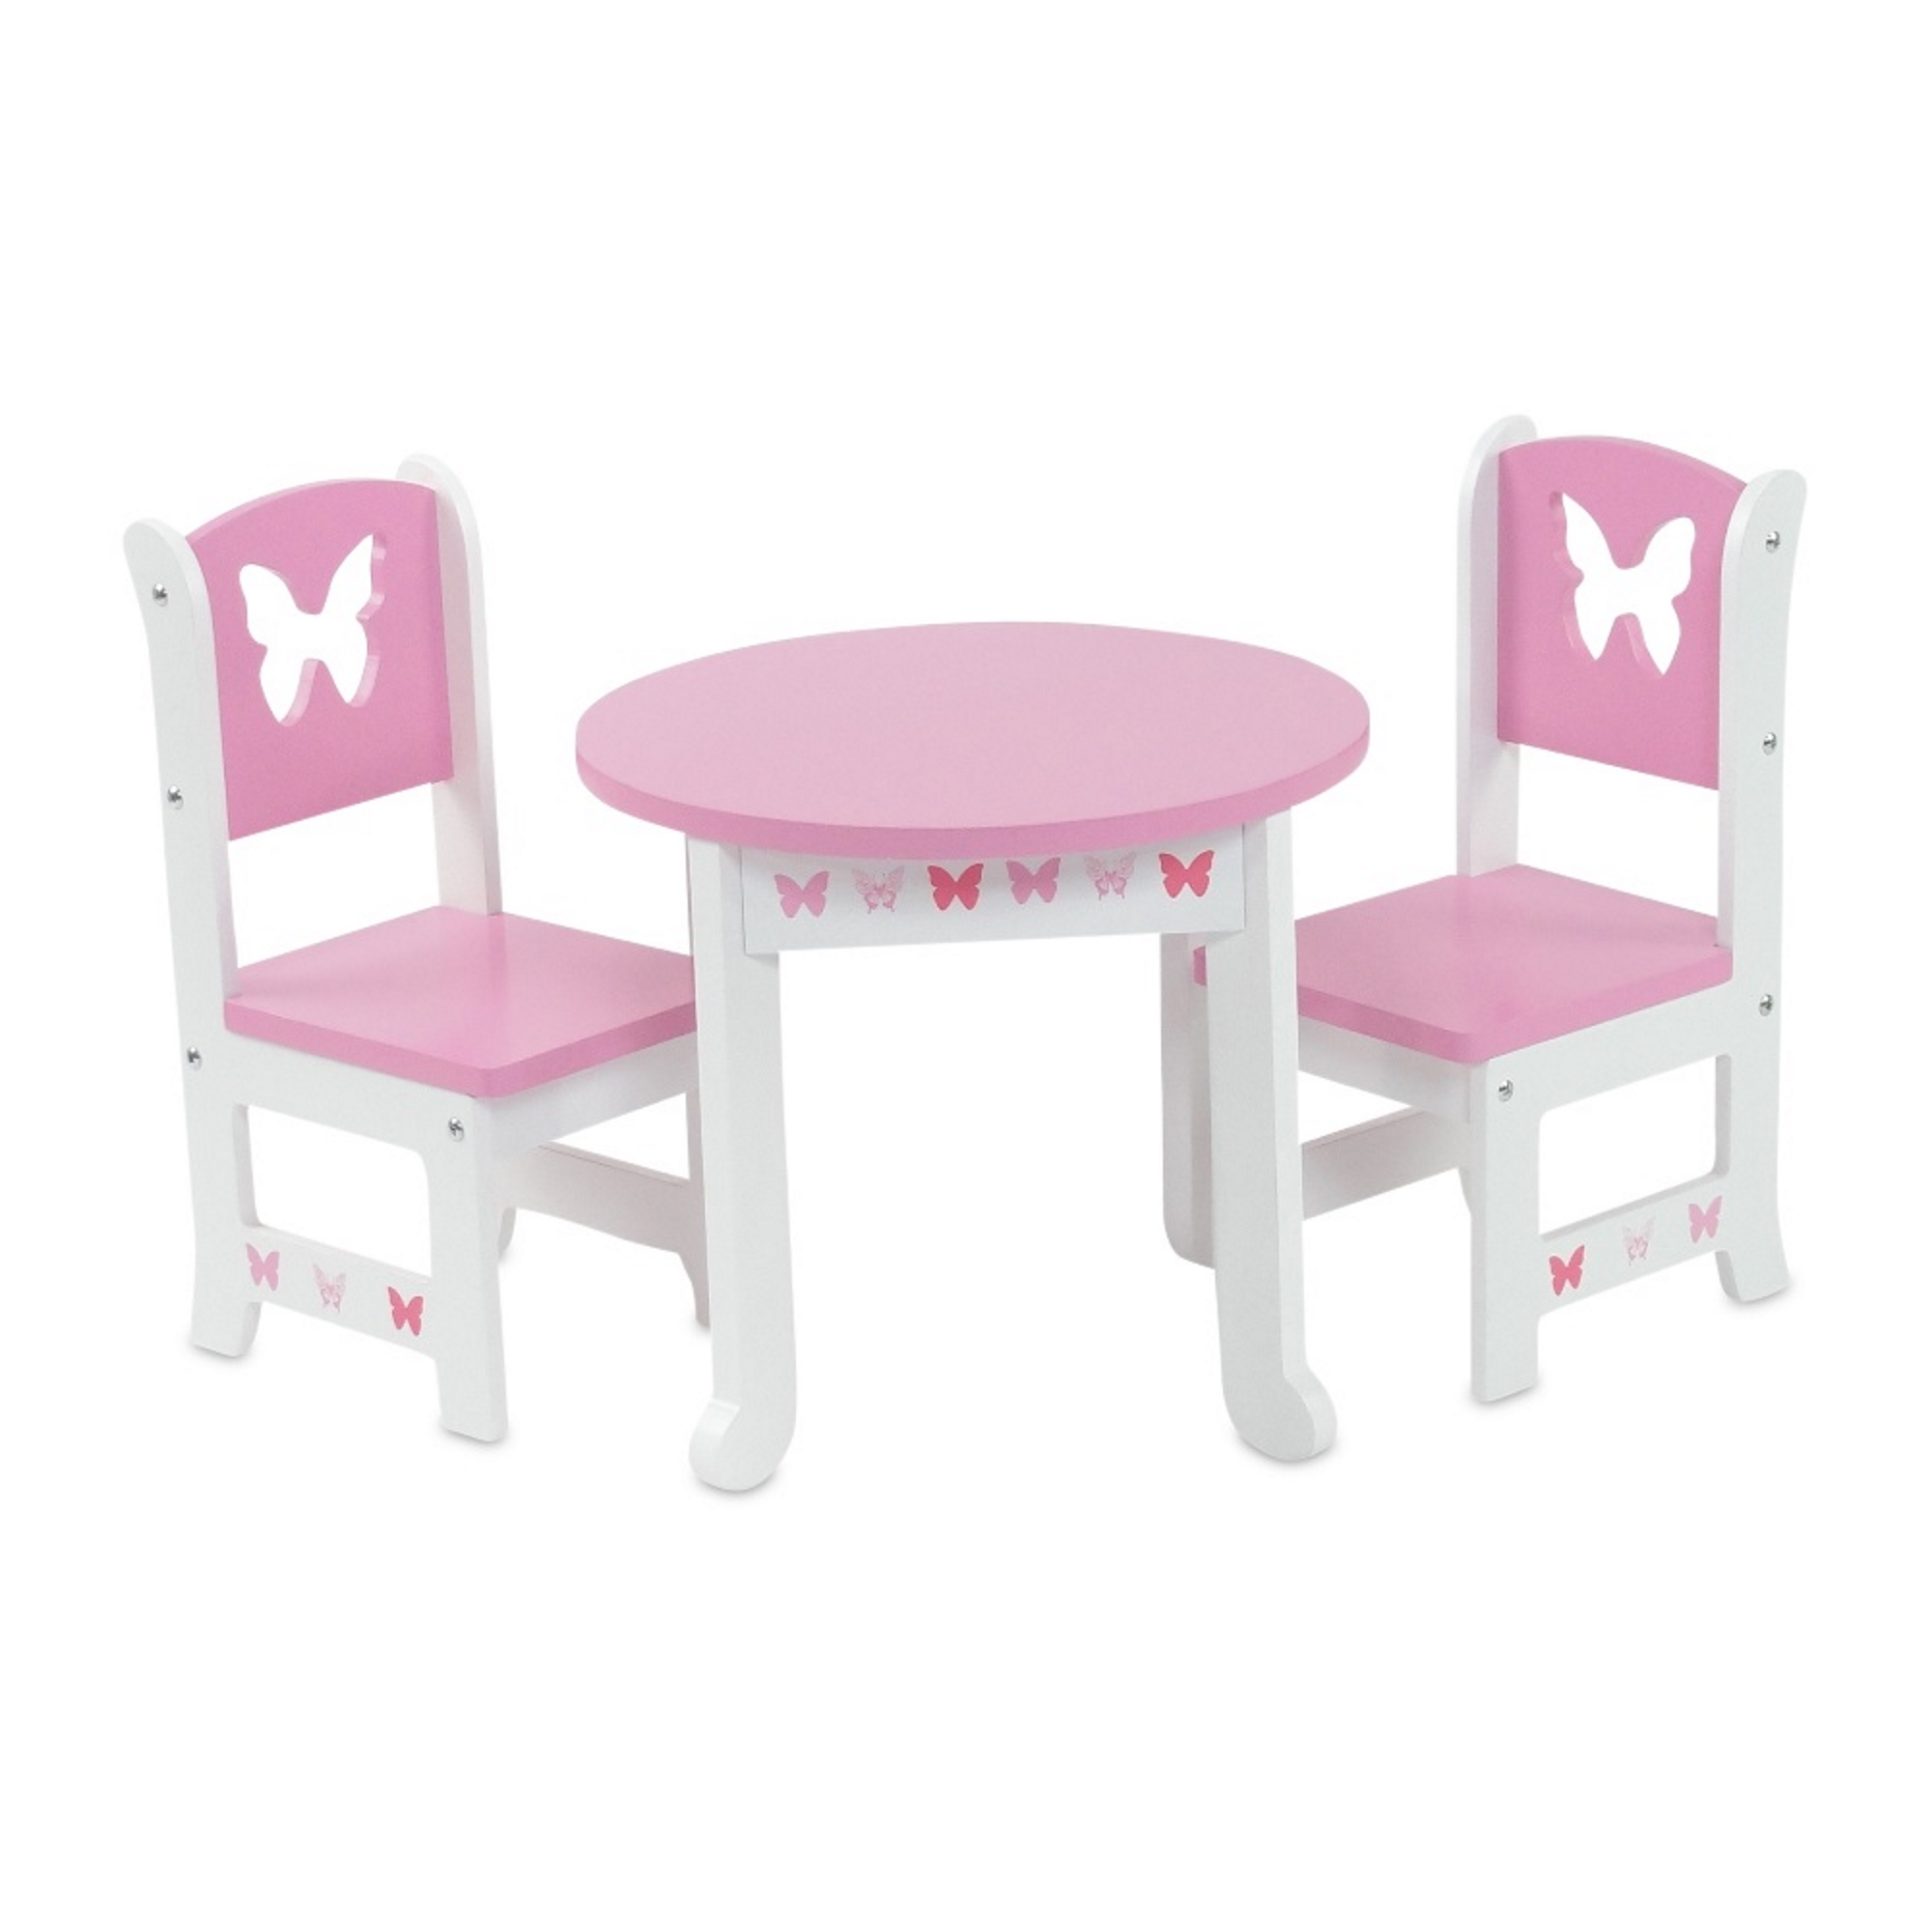 18 doll table and chairs chair covers for sale wholesale inch furniture lovely pink white 2 dining set with beautiful butterfly motif fits american girl dolls walmart com